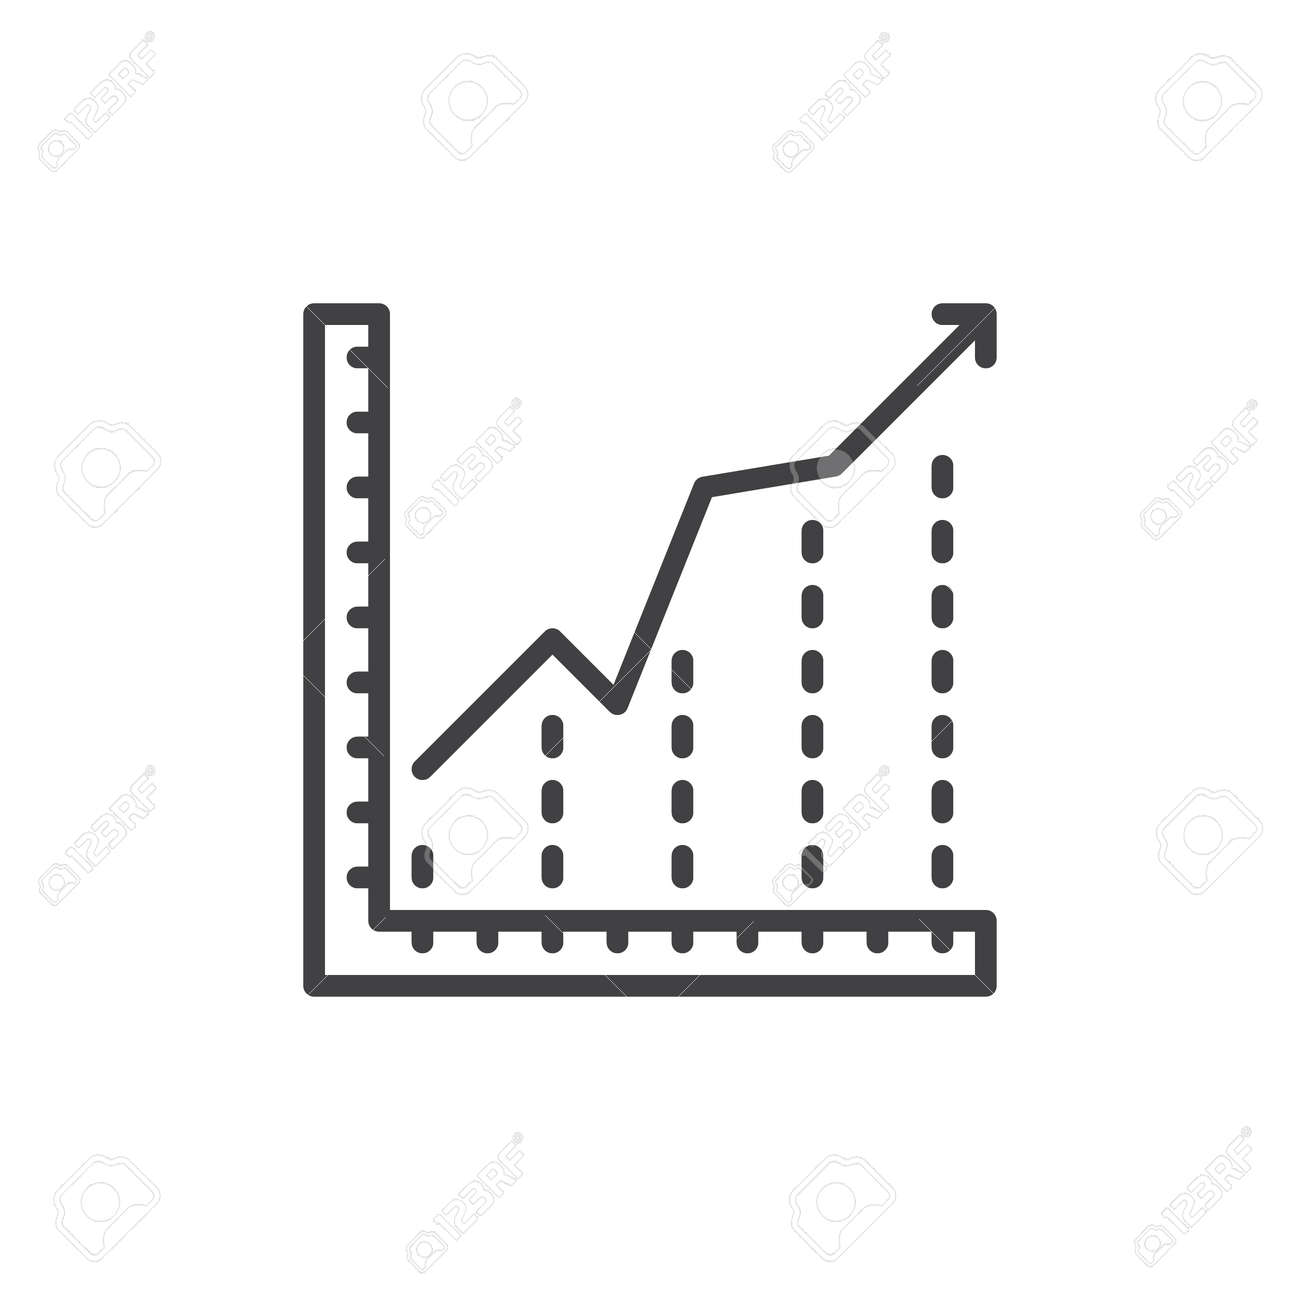 Growing chart line icon outline vector sign linear style pictogram banco de imagens growing chart line icon outline vector sign linear style pictogram isolated on white diagram symbol logo illustration ccuart Choice Image